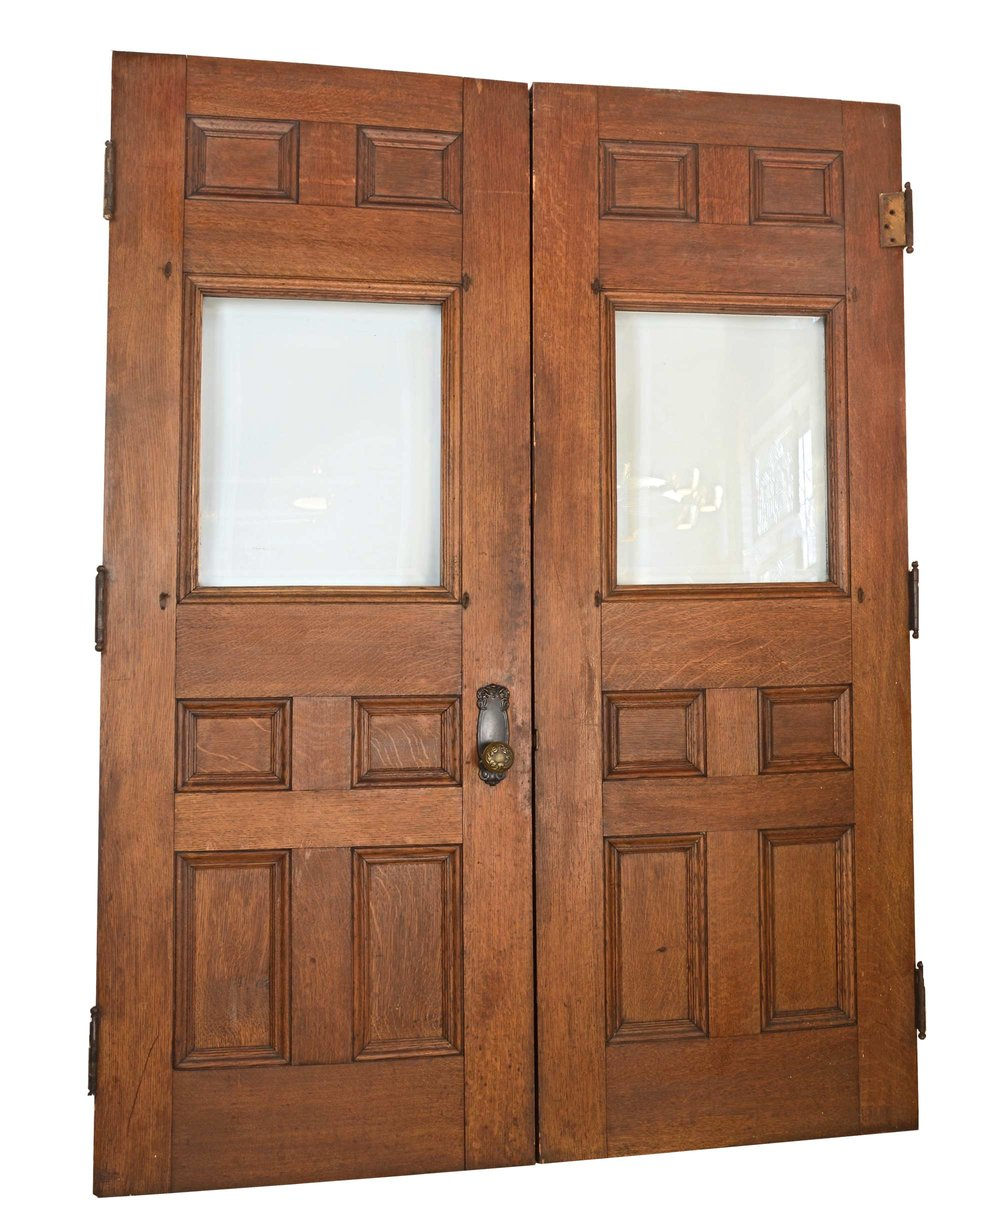 46694-oak-double-doors-with-beveled-glass-back.jpg